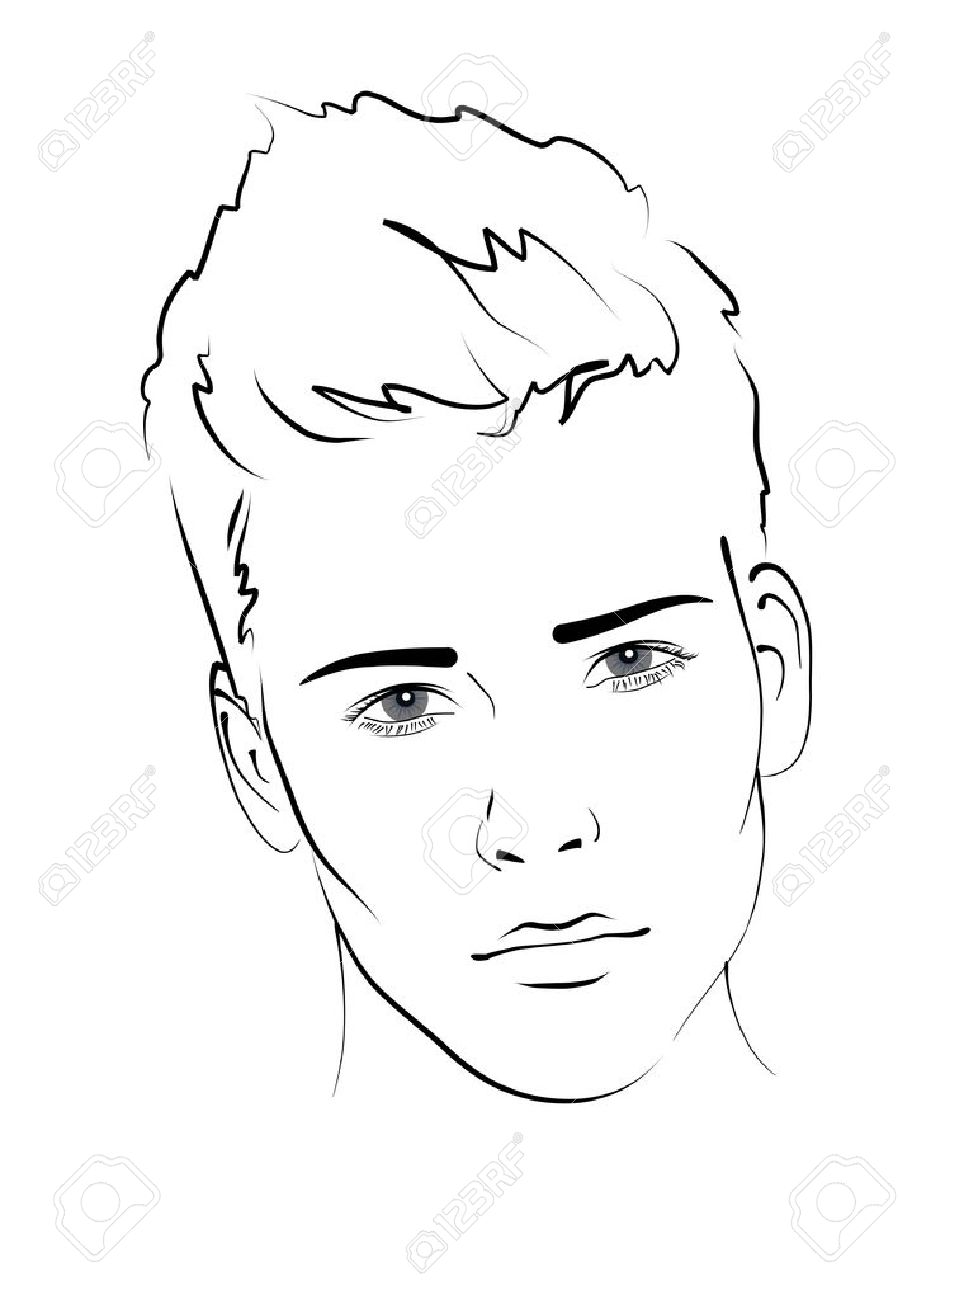 Sketch portrait of a handsome man stock vector 16535605